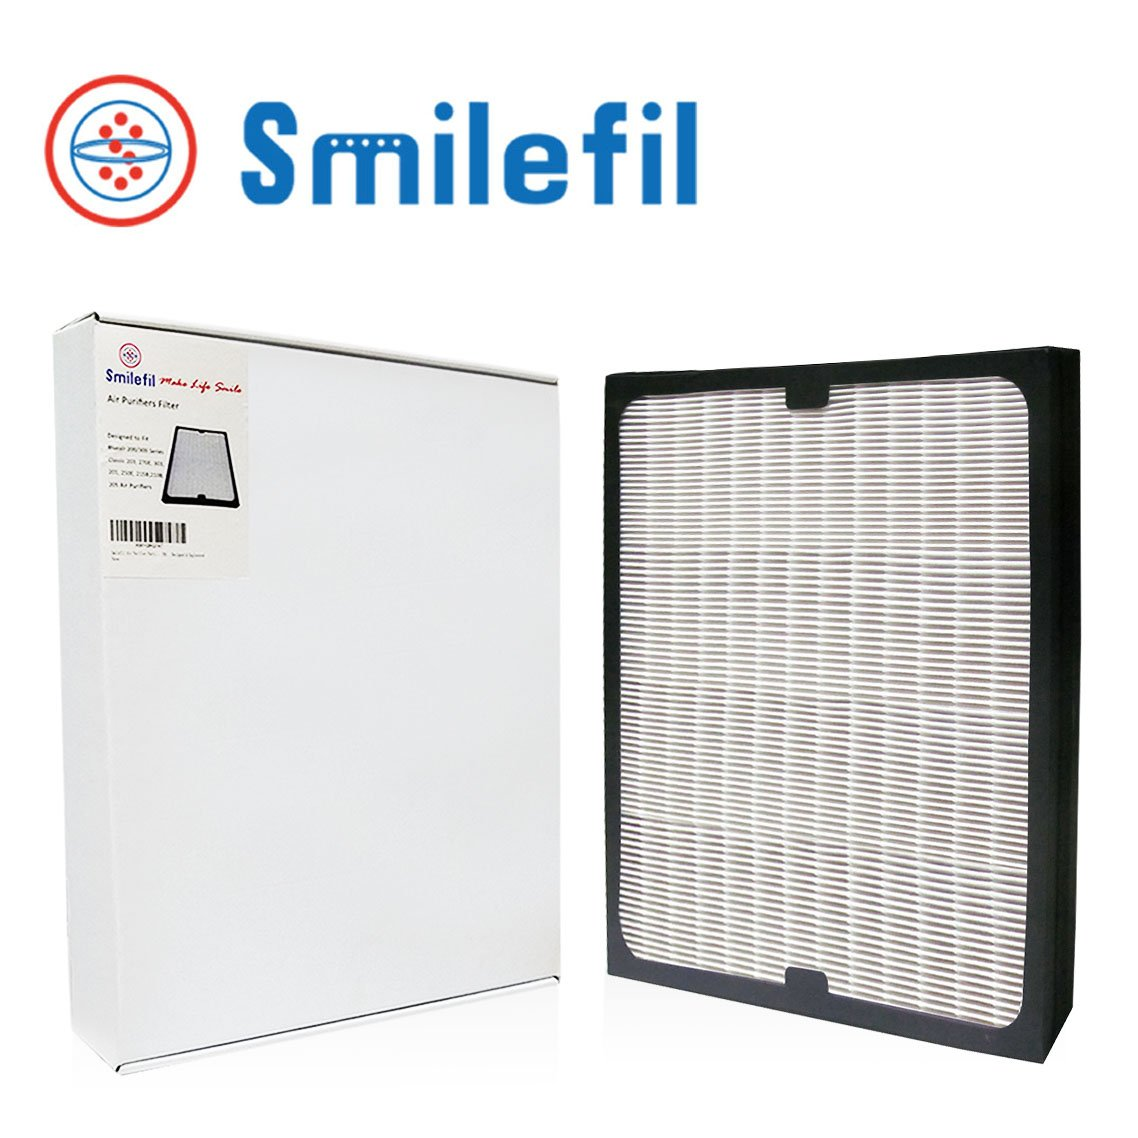 Smilefil Replacement Filter 1-Pack True HEPA Filter for Blueair 200/300 Series Particle Filter models Classic 203, 270E, 303, 201, 250E, 215B, 210B, 205